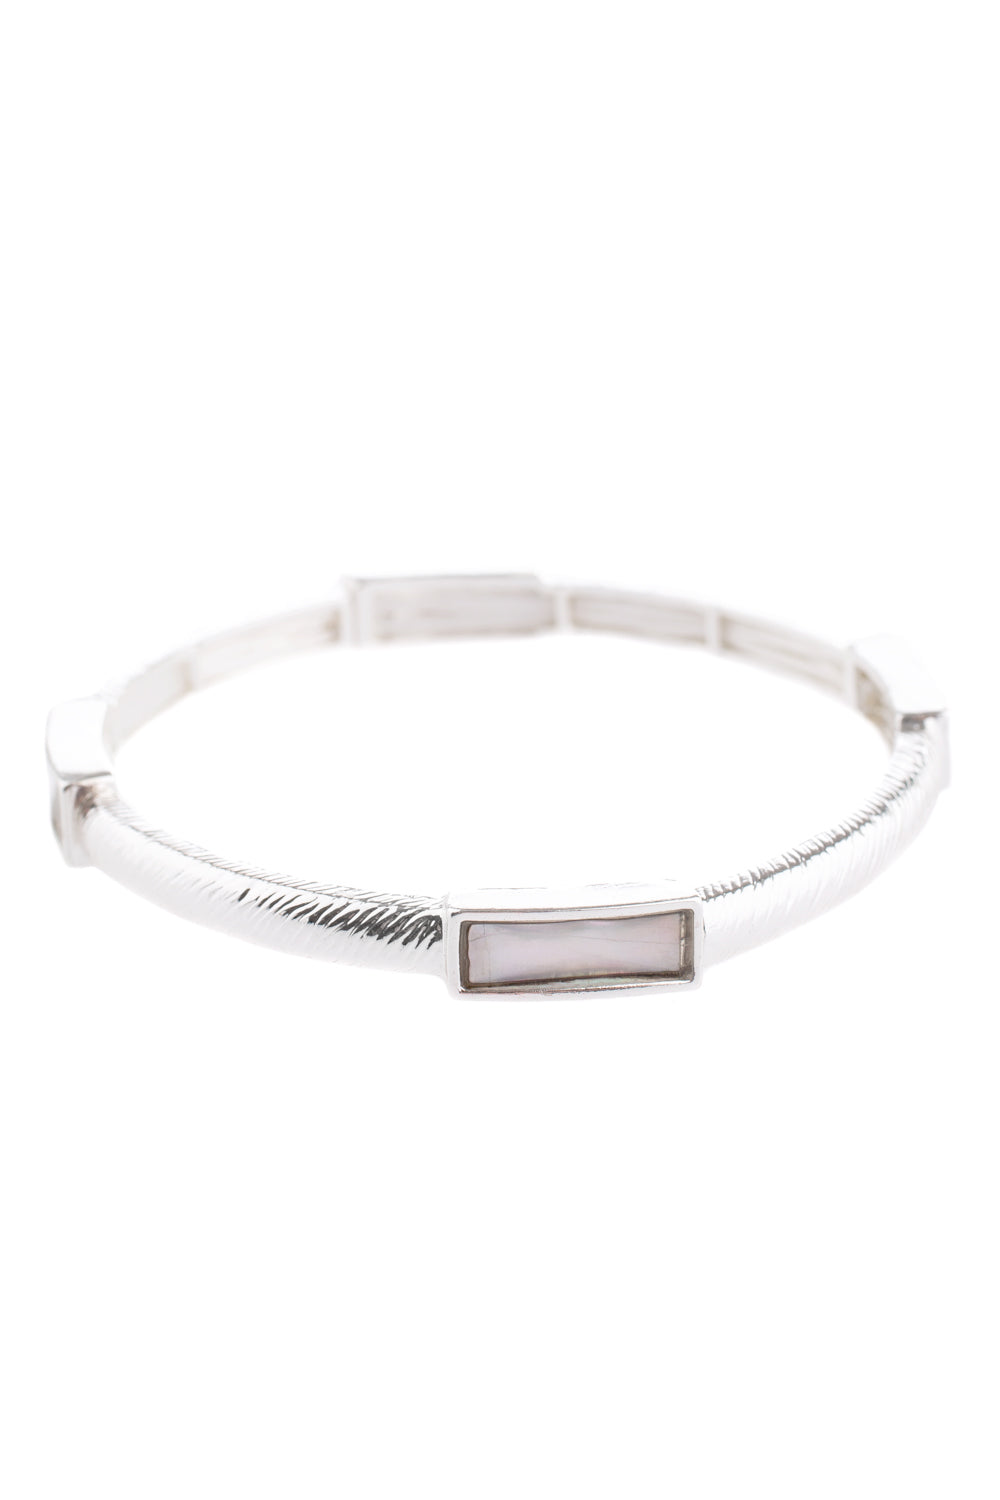 Type 2 Harmonized Thoughts Bracelet